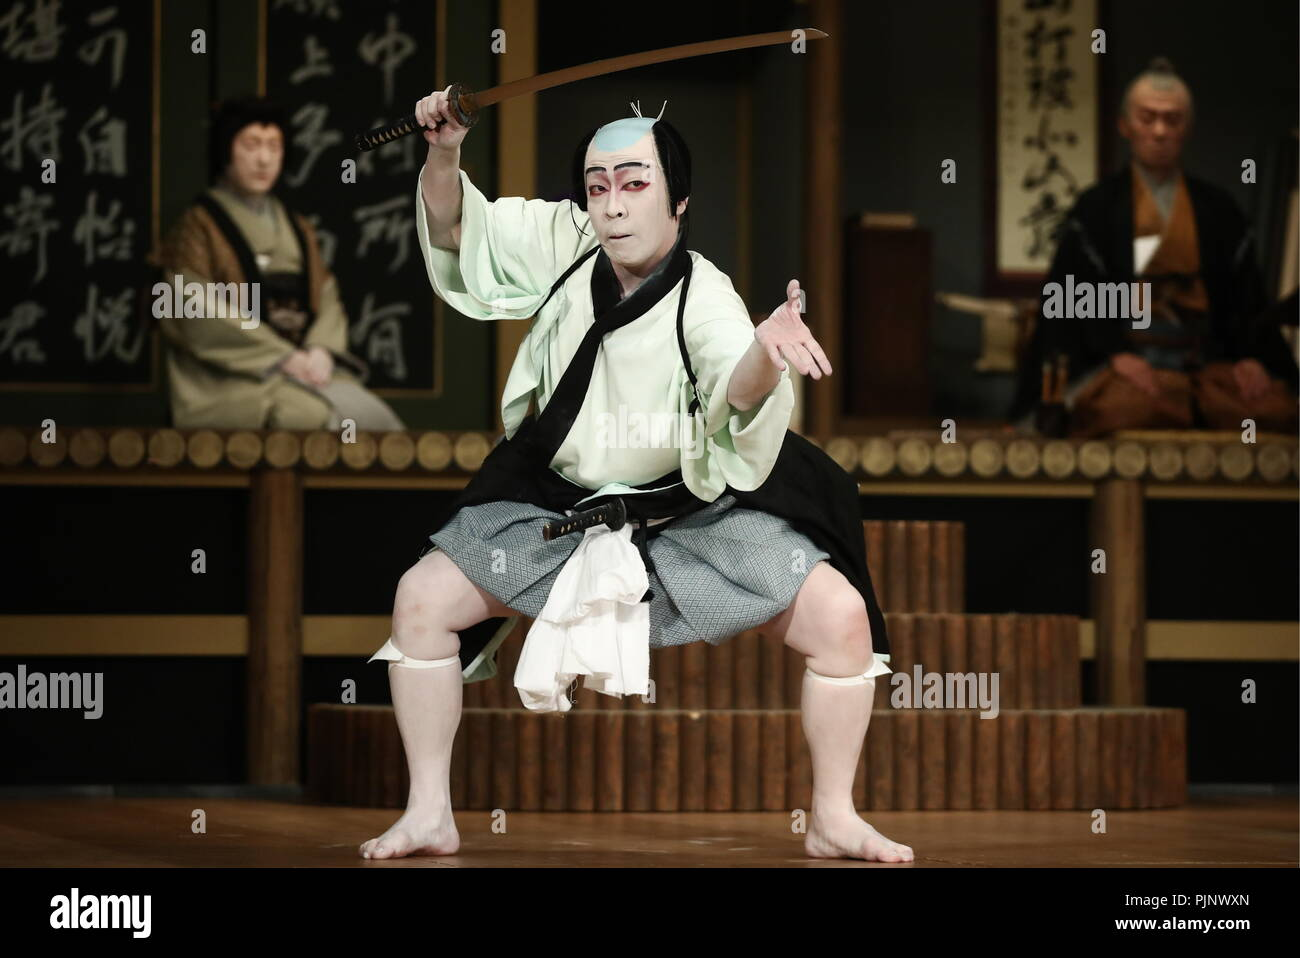 Moscow, Russia. 08th Sep, 2018. MOSCOW, RUSSIA - SEPTEMBER 8, 2018: A scene from the Keisei Hangonko production, a Shochiku Grand Kabuki performance by Chikamatsuza Troupe, as part of the Chekhov International Theatre Festival at the Mossovet Theatre. The production is performed as part of the Japan-Russia cross cultural year of 2018. Valery Sharifulin/TASS Credit: ITAR-TASS News Agency/Alamy Live News - Stock Image